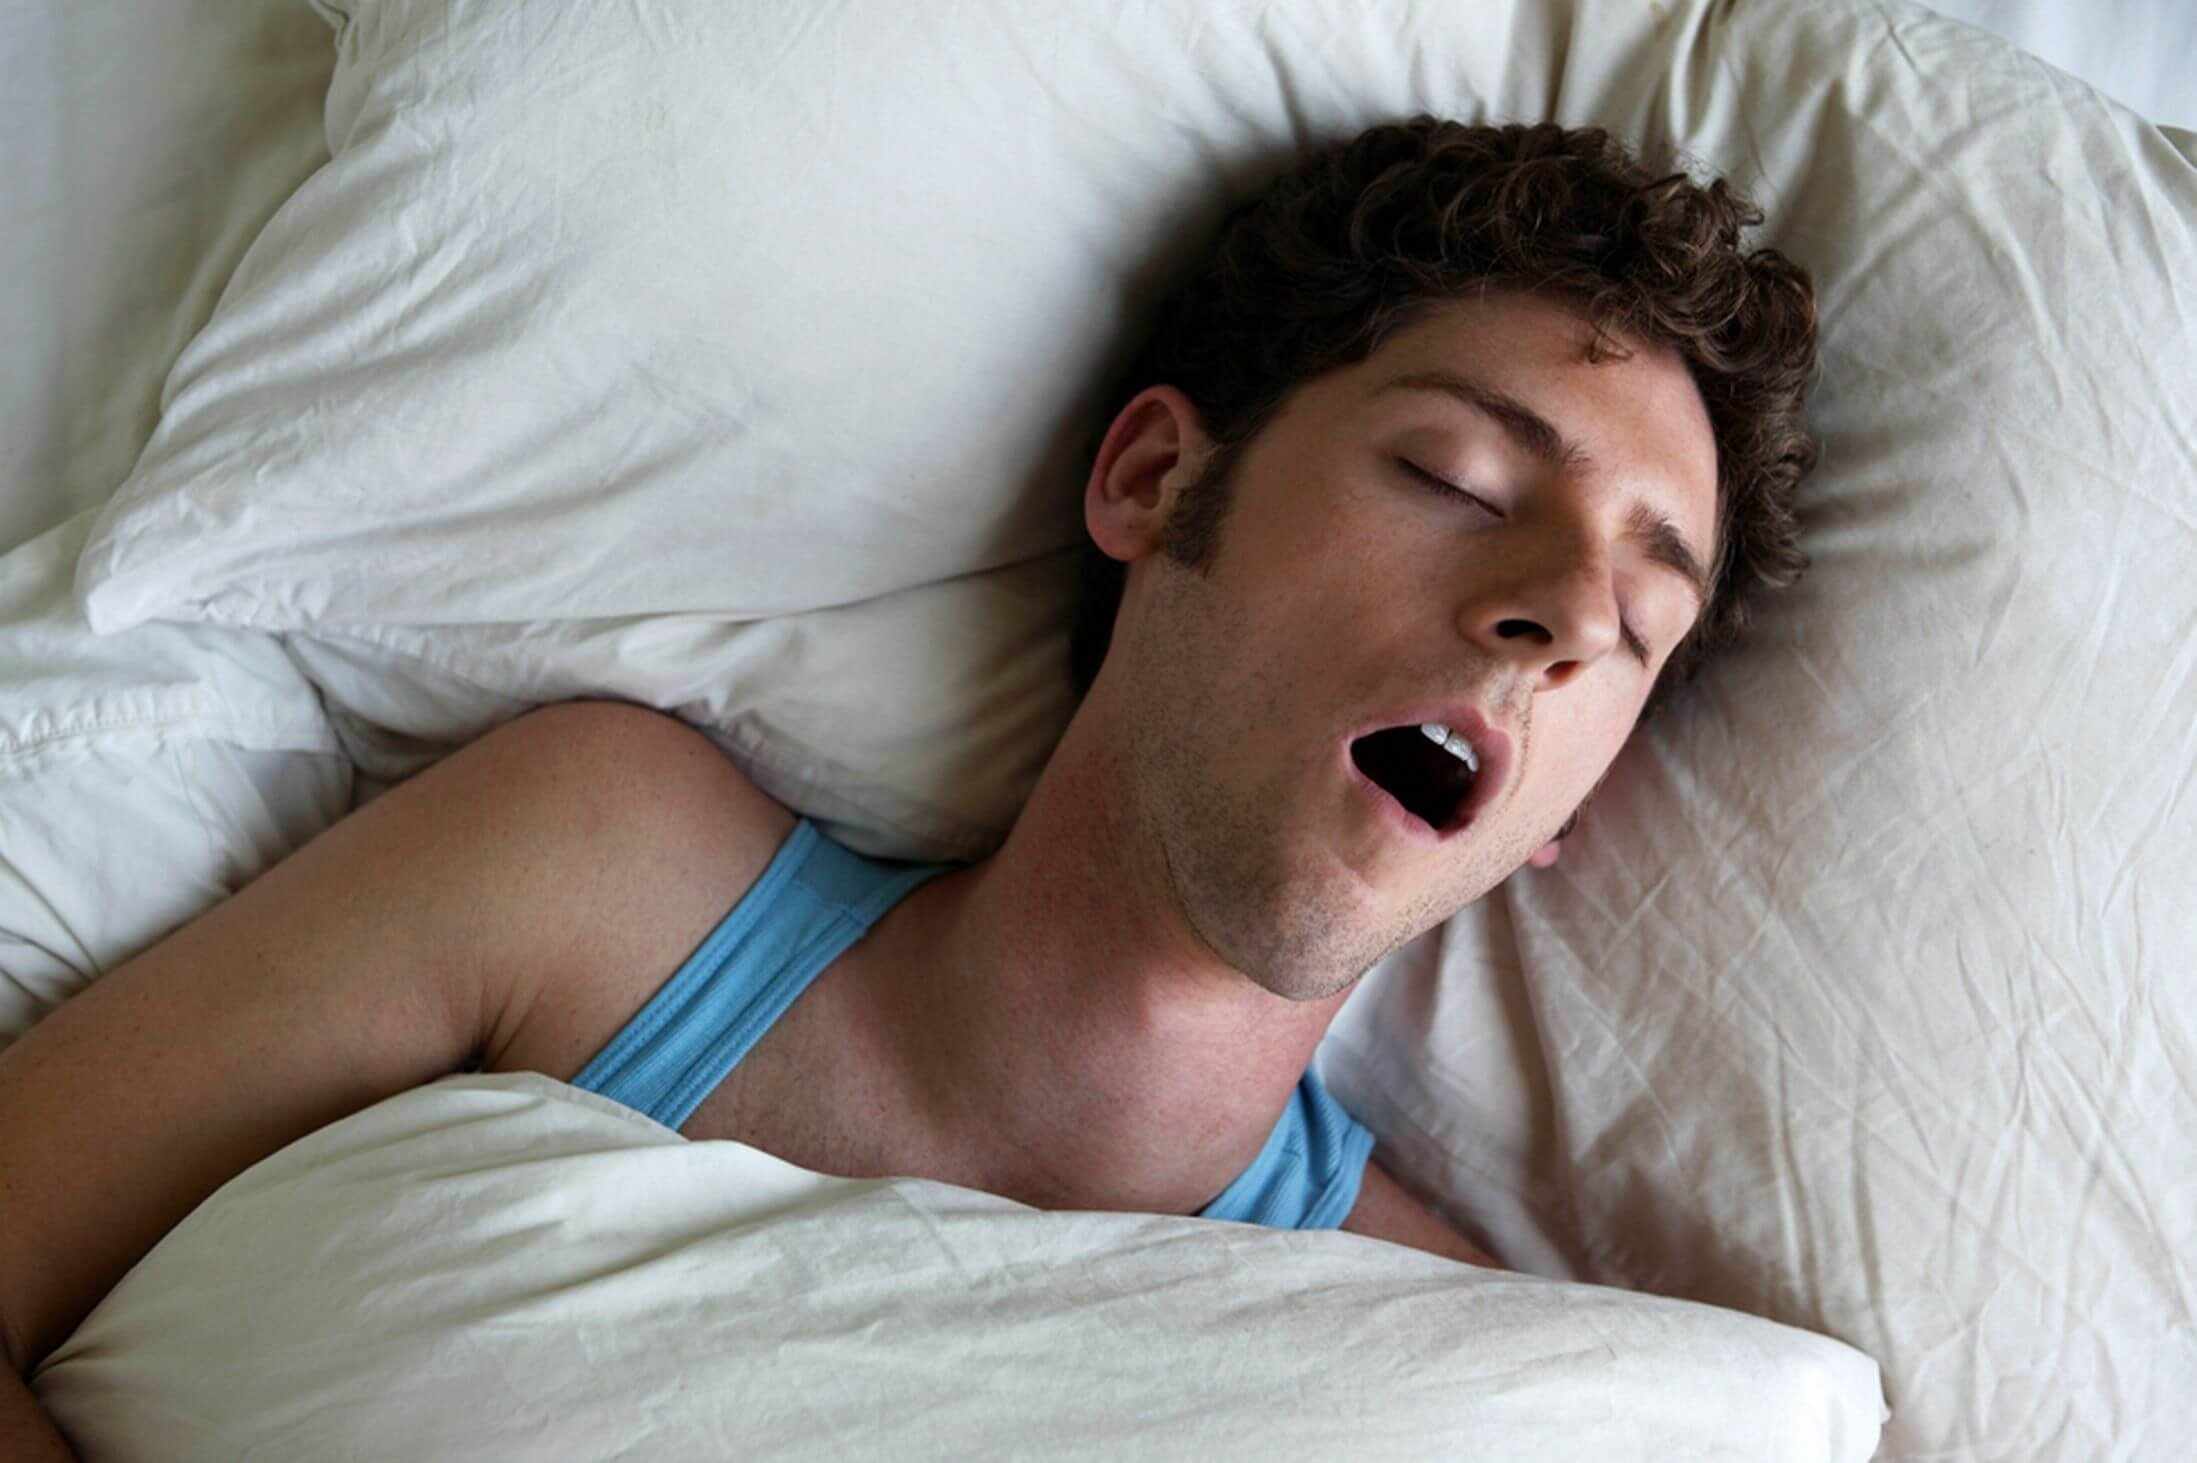 Do you know why a person jerks when falling asleep